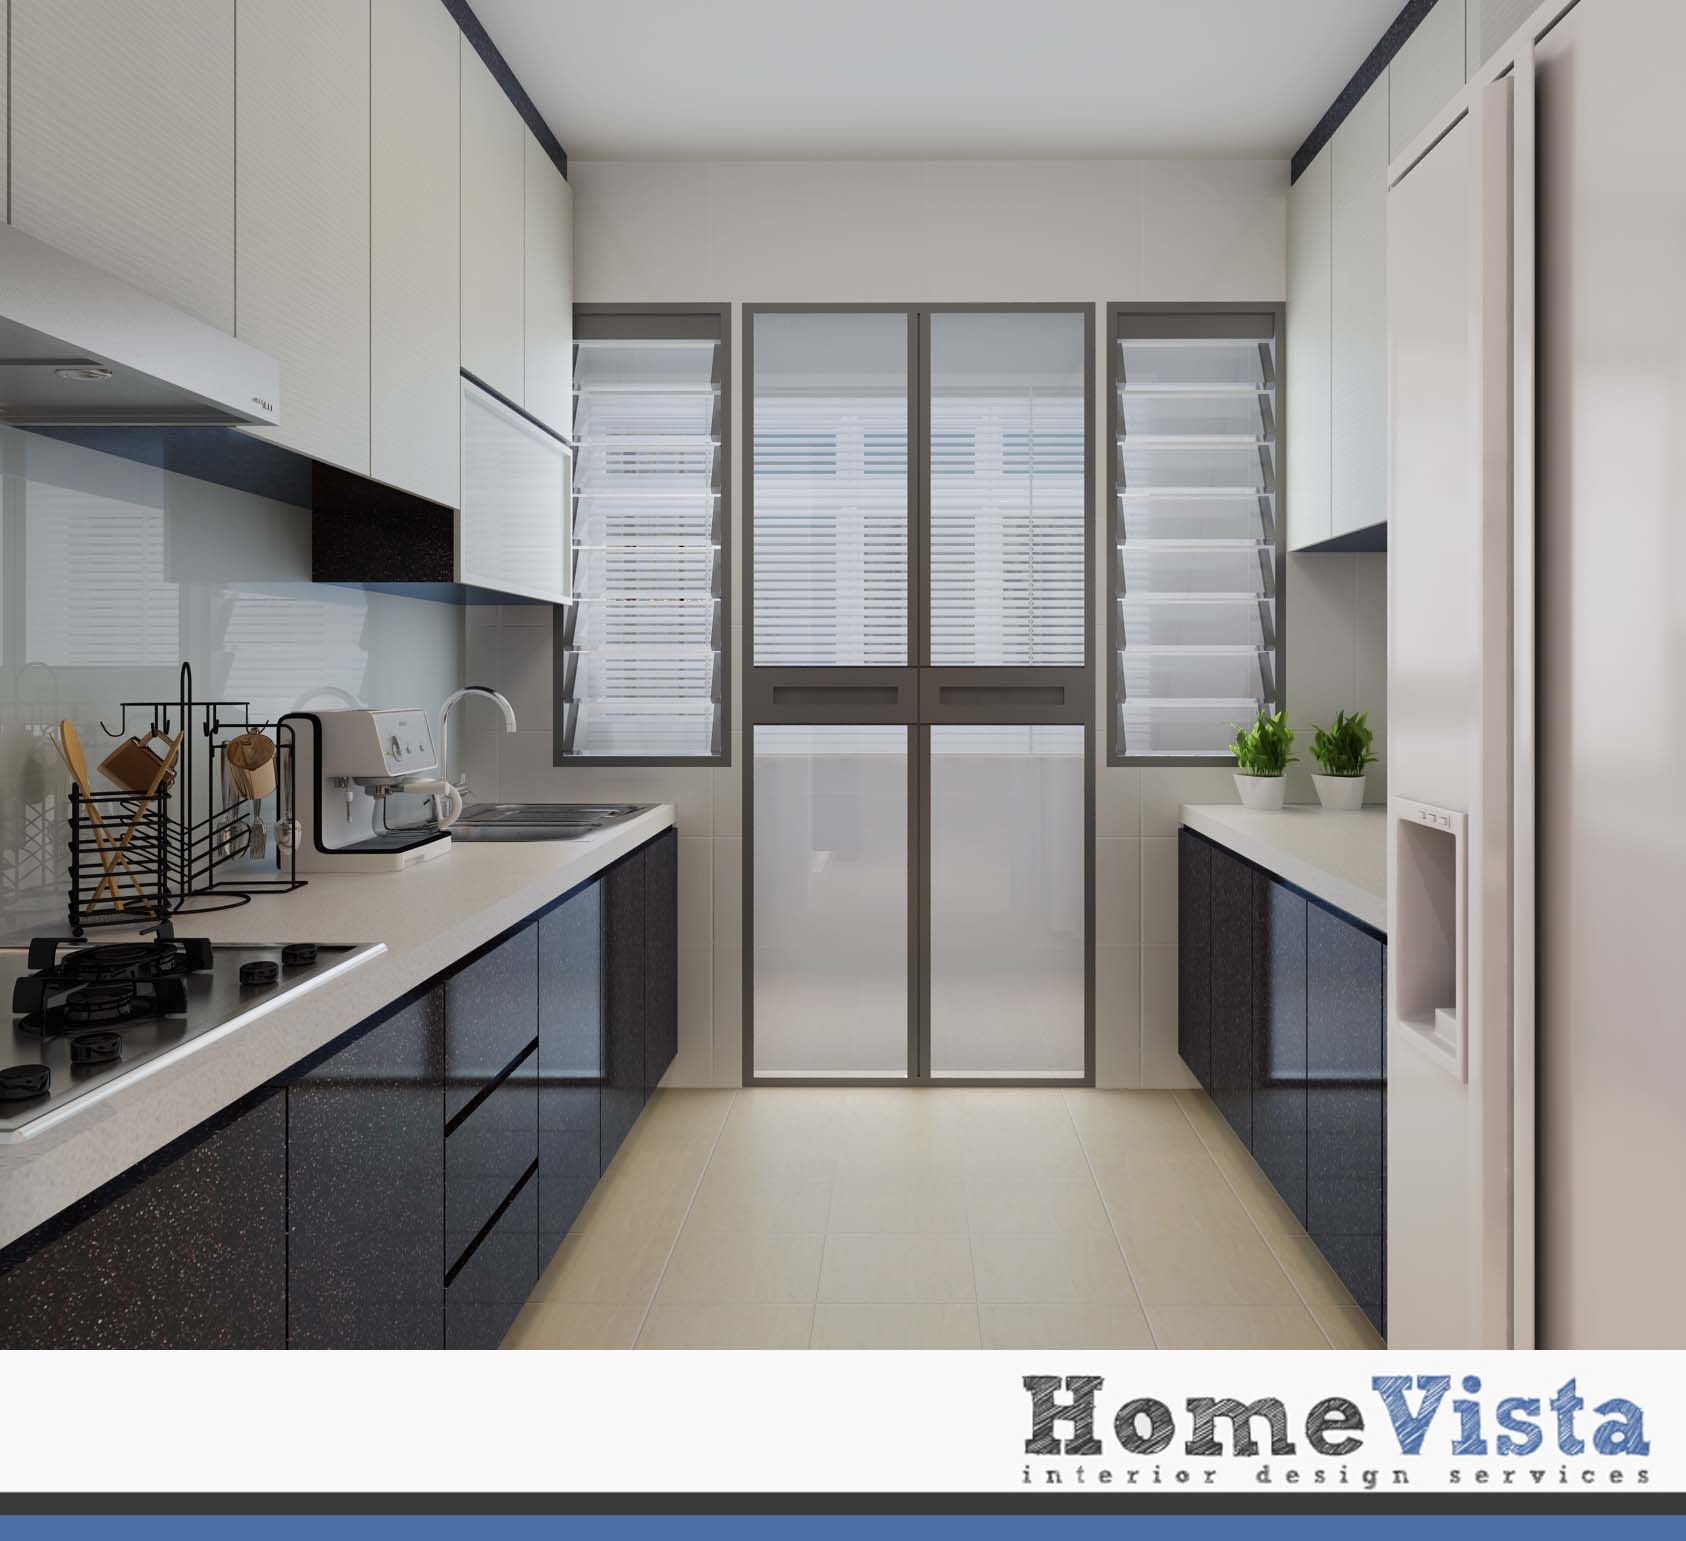 kitchen design bto 4 room bto yishun hdb bto homevista kitchen design 636